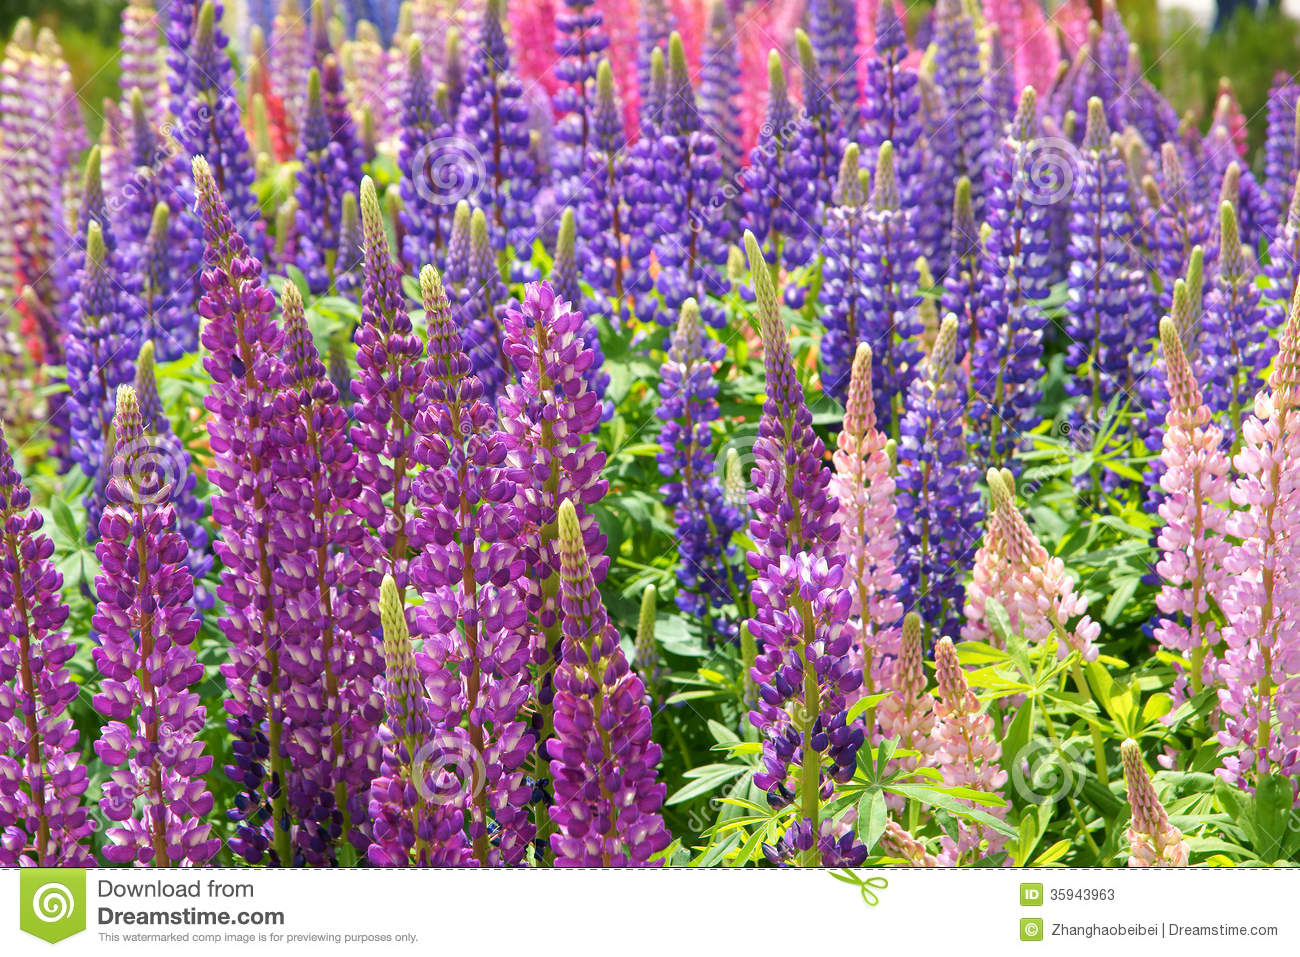 lupine flowers royalty free stock image  image, Natural flower